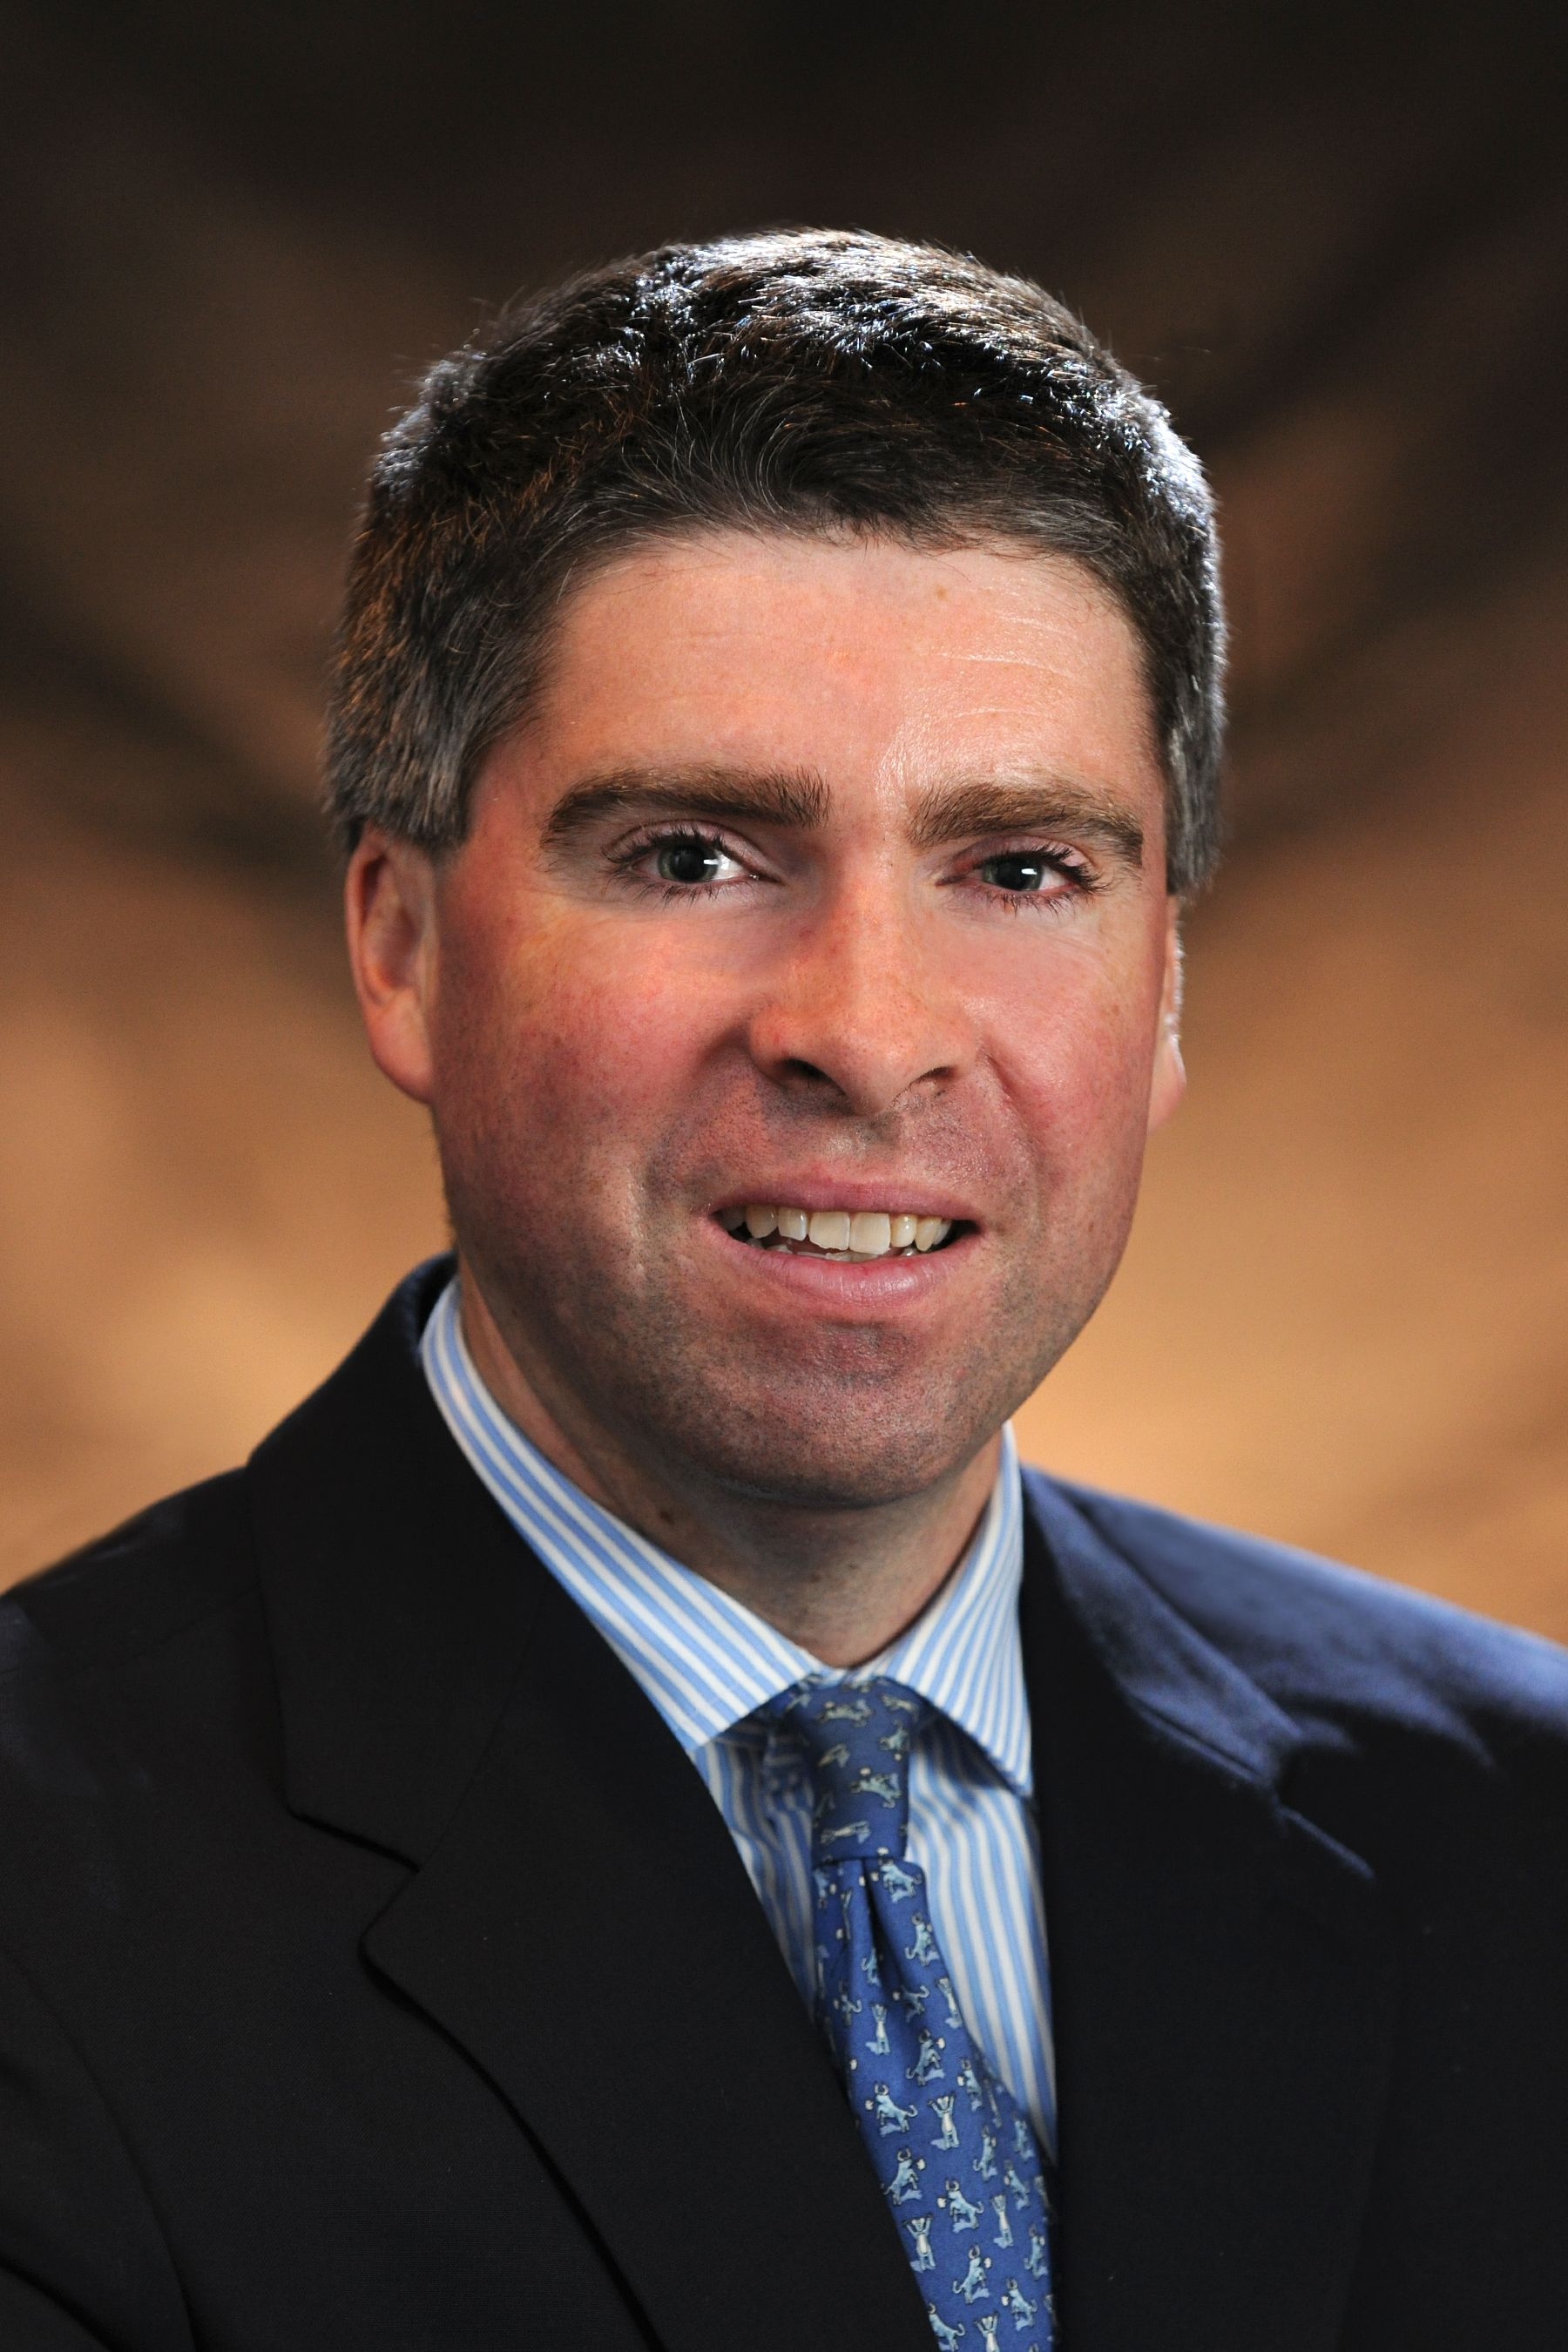 John A. Anderson, MD. Specialty Orthopaedic Surgery